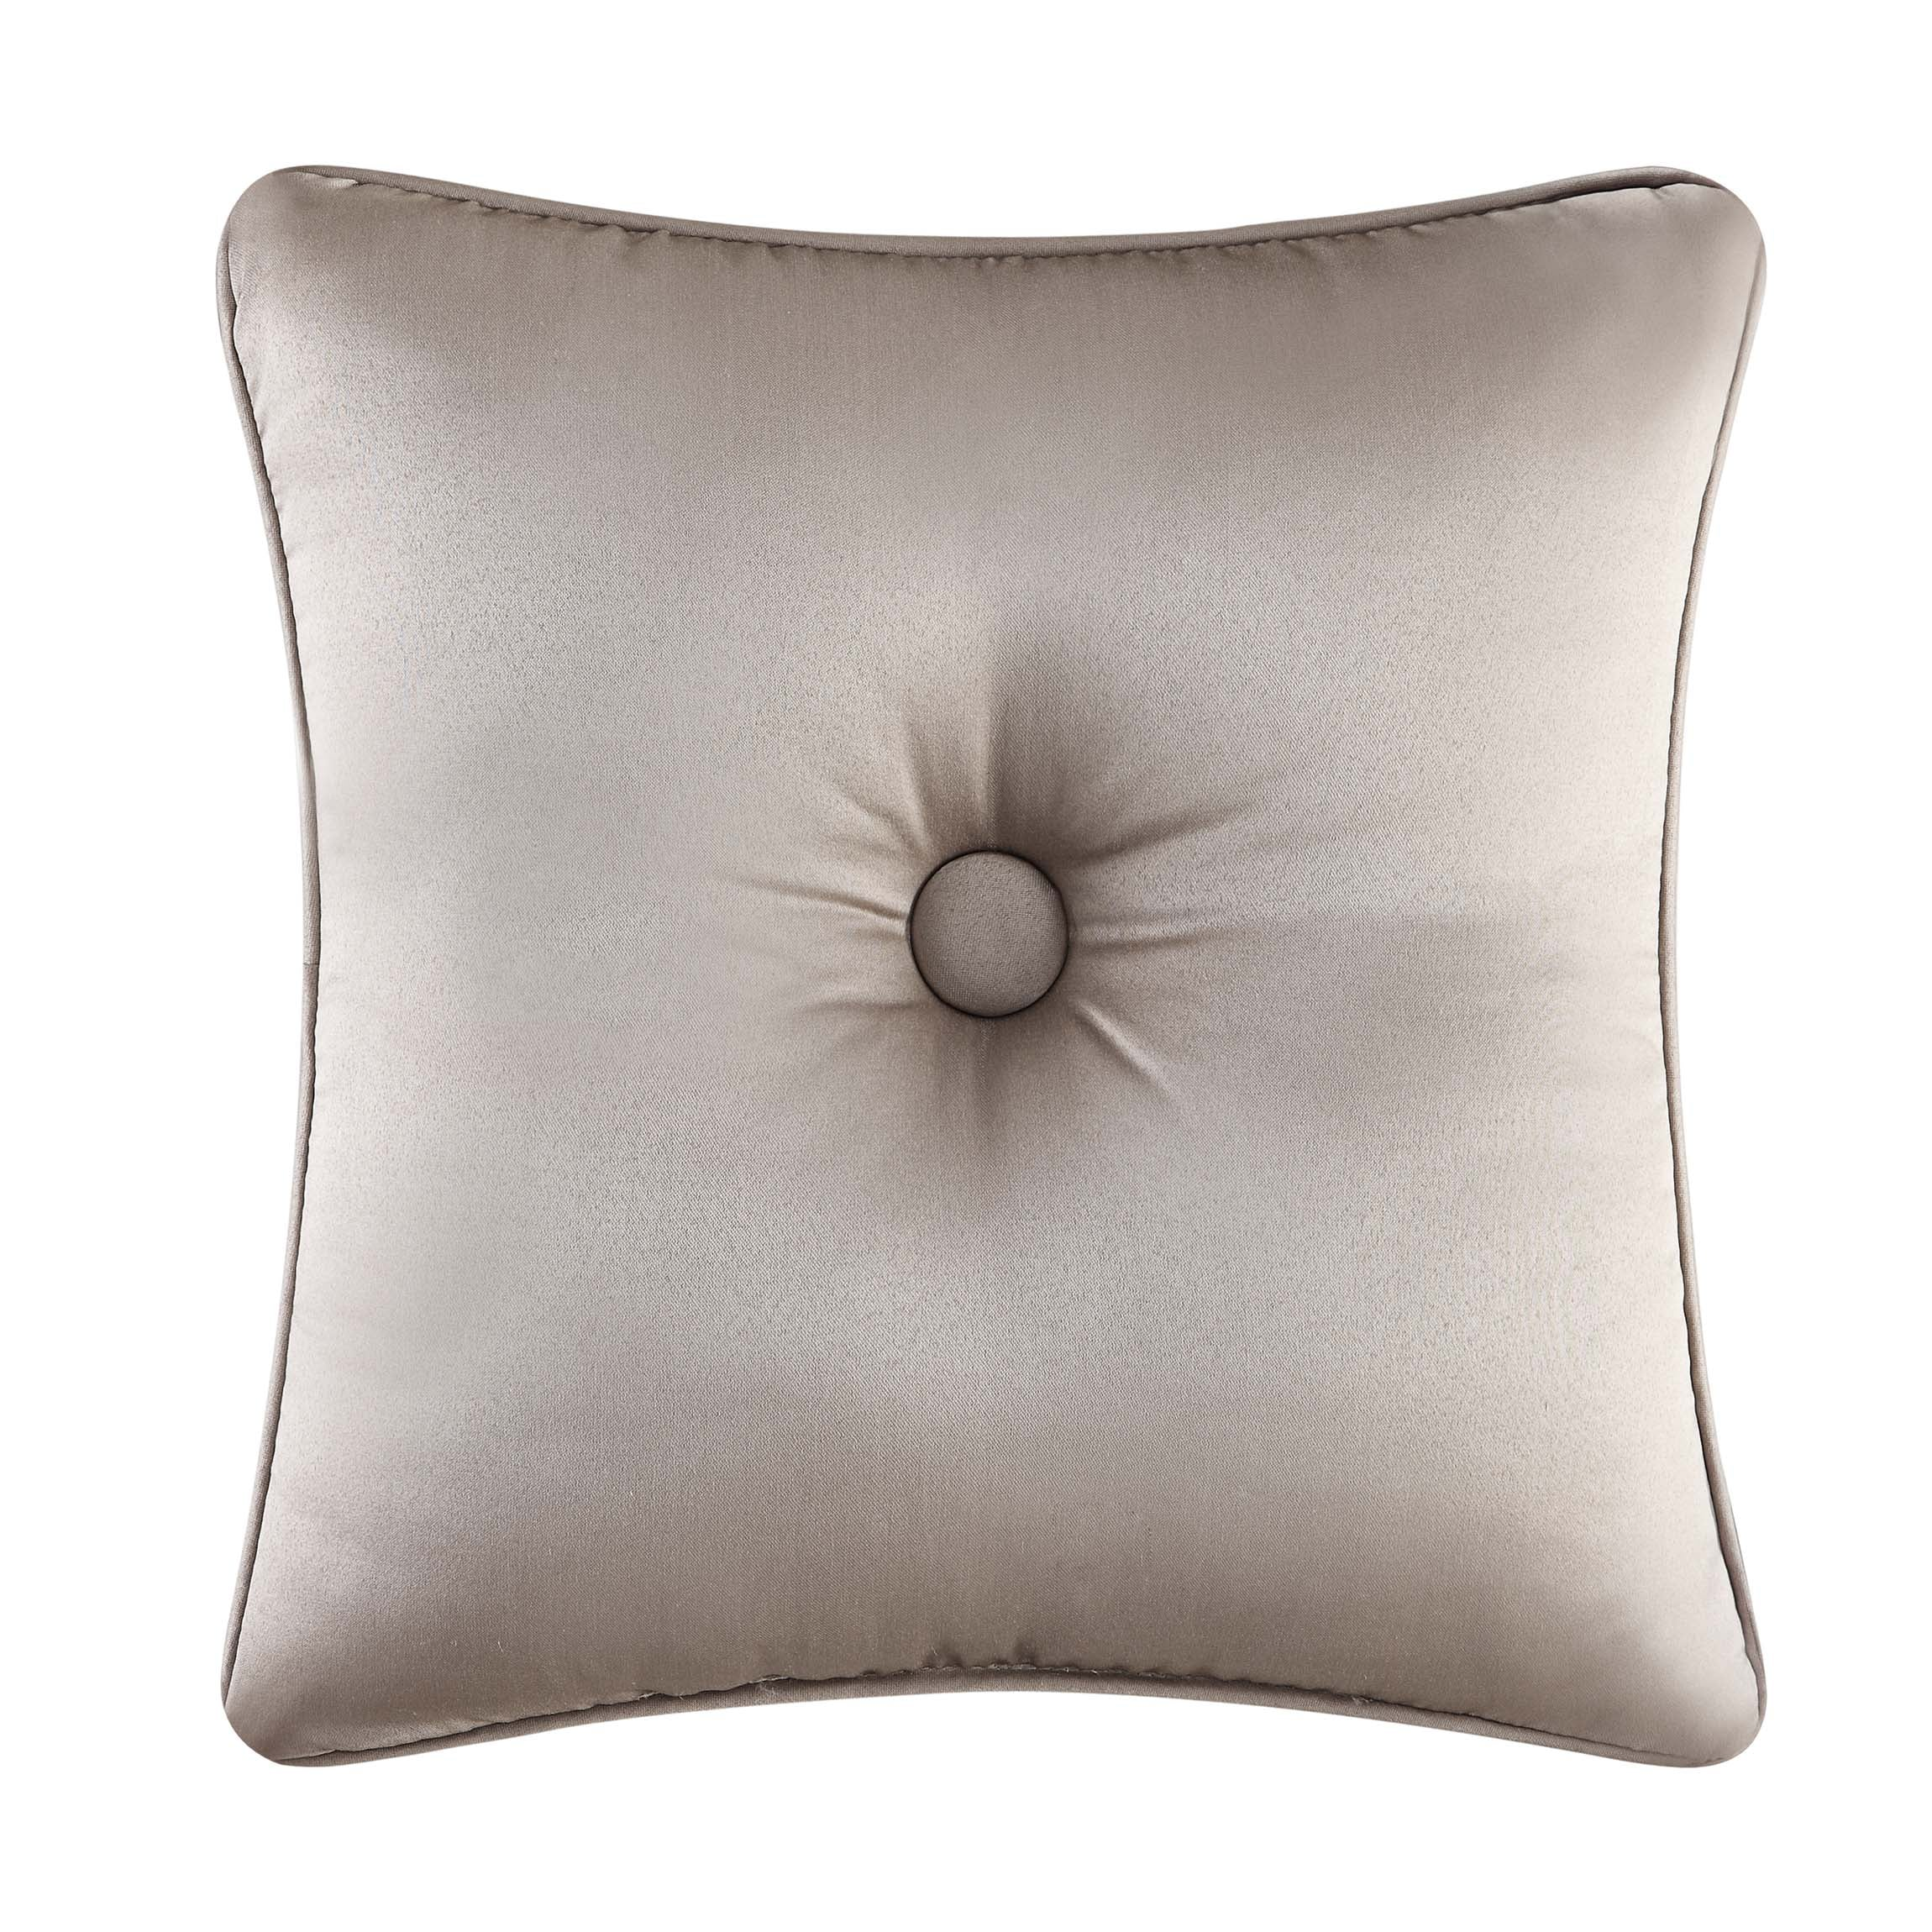 "Astoria Sand Square Decorative Throw Pillow 16"" x 16""- Throw Pillows By J. Queen New York"